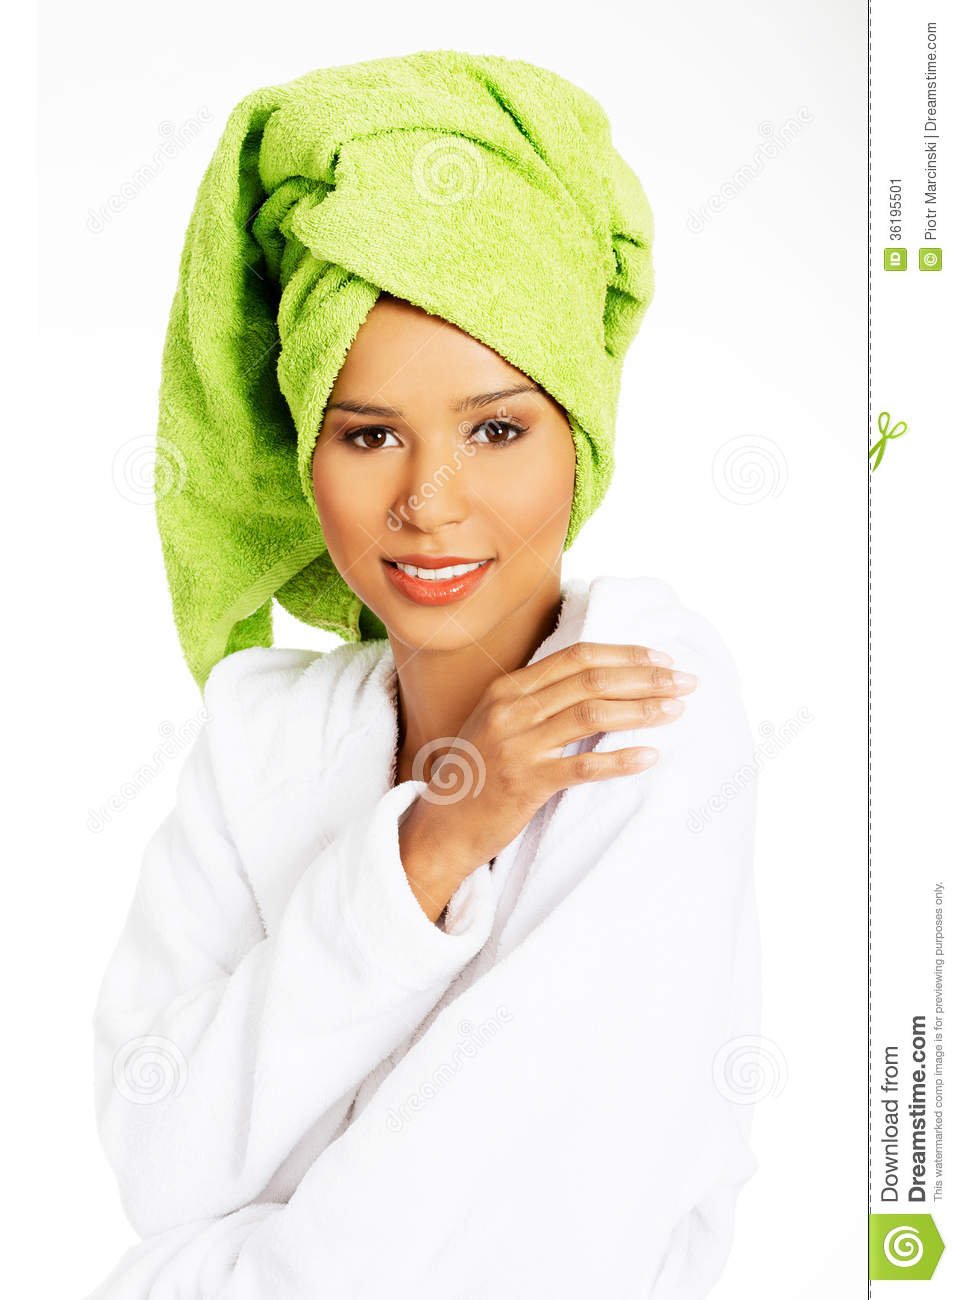 Redwood Christian Park RCP Creative Spaces Womens Women in towels photos